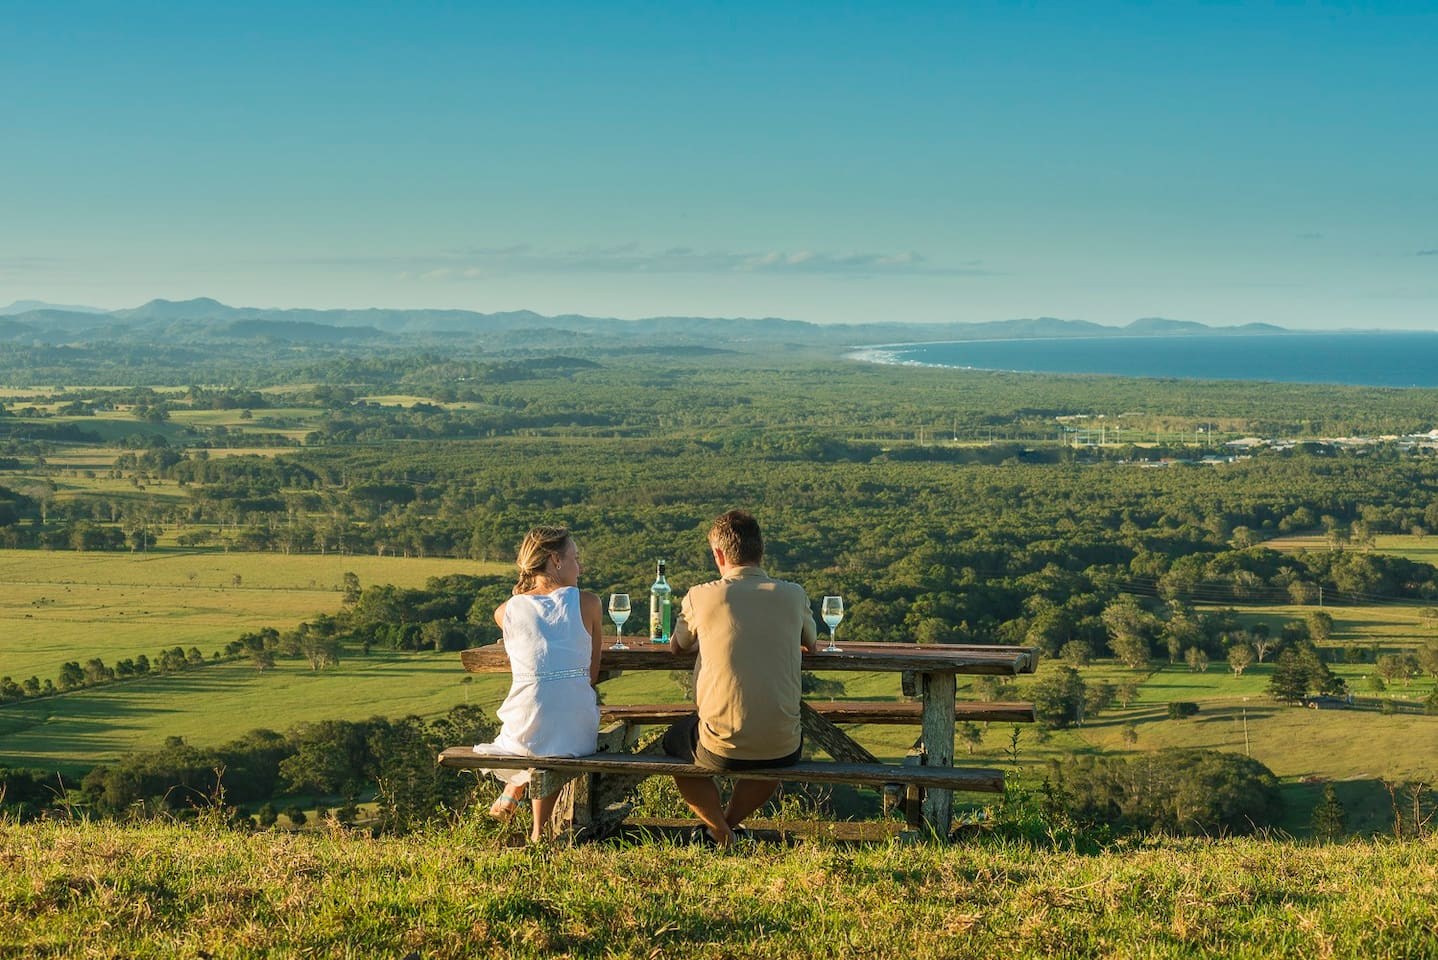 The best views in Byron... Come and see for yourself!